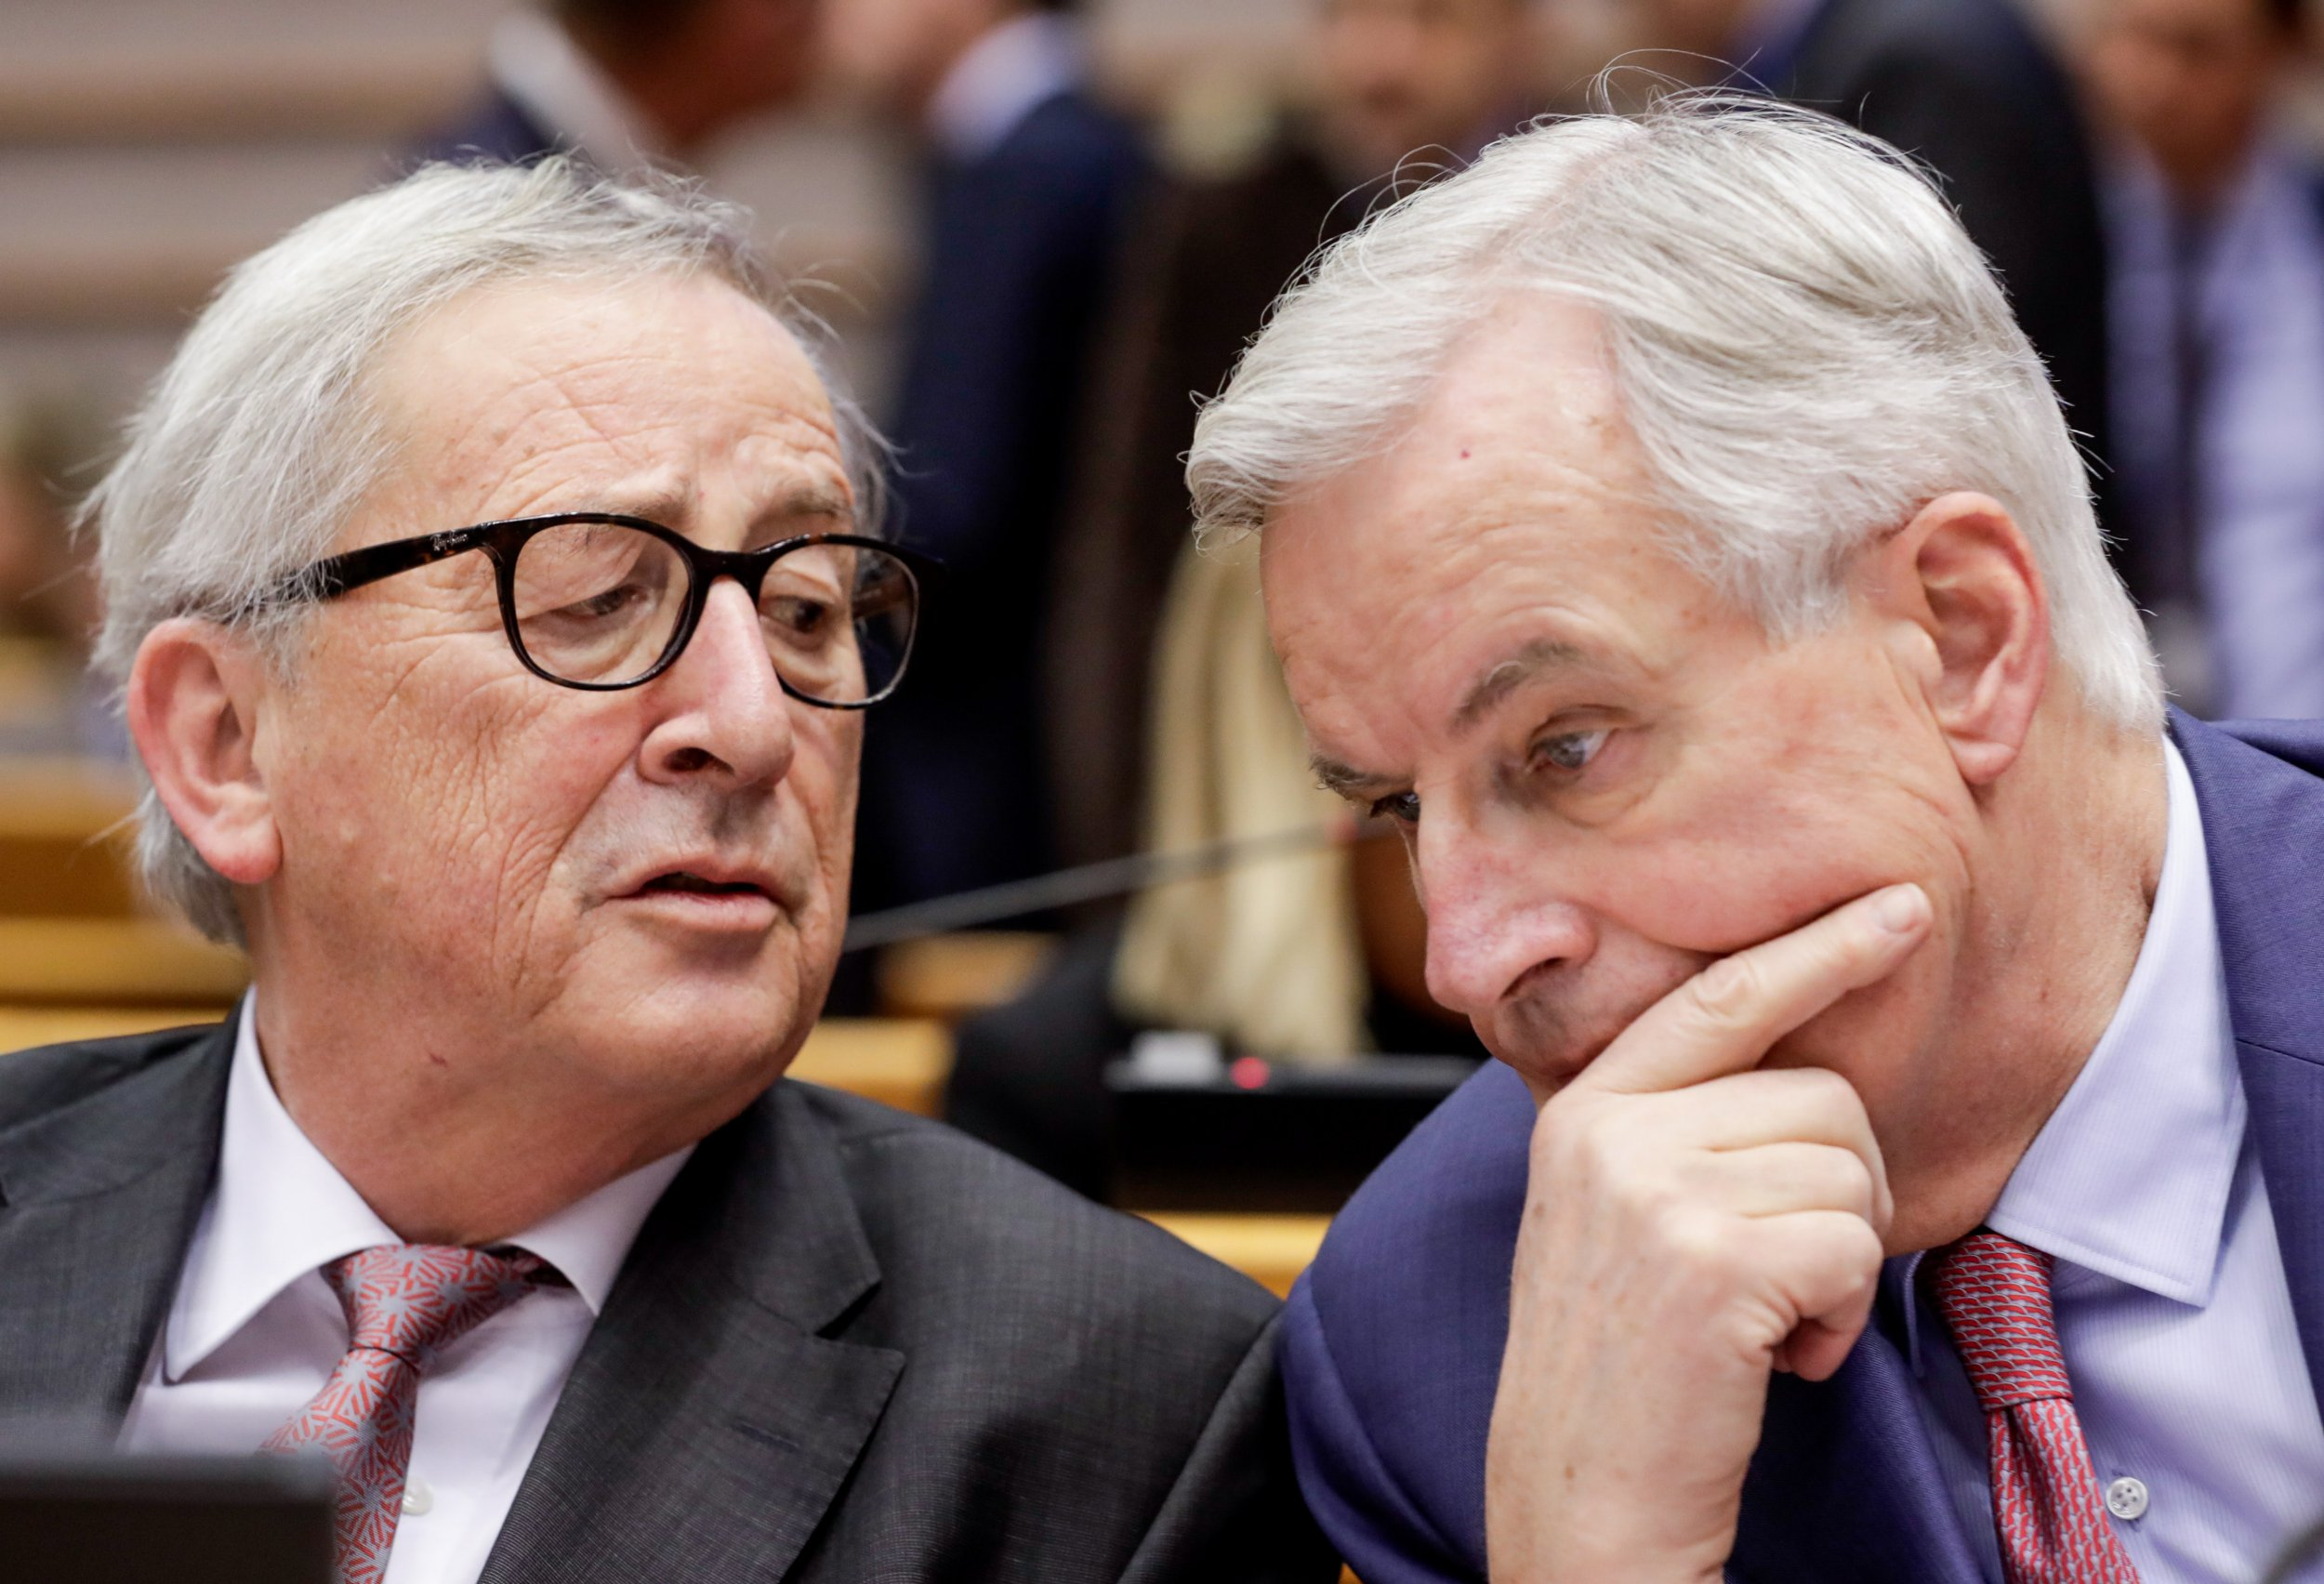 epa07331776 EU Brexit European Commission's Chief Negotiator Michel Barnier (R) and European Commission President Jean-Claude Juncker during a plenary session at the European Parliament in Brussels, Belgium, 30 January 2019. British parliamentarians voted on amendments to British Prime Minister May's Brexit deal. May is expected to go back to Brussels to seek changes to the Irish backstop. EPA/STEPHANIE LECOCQ